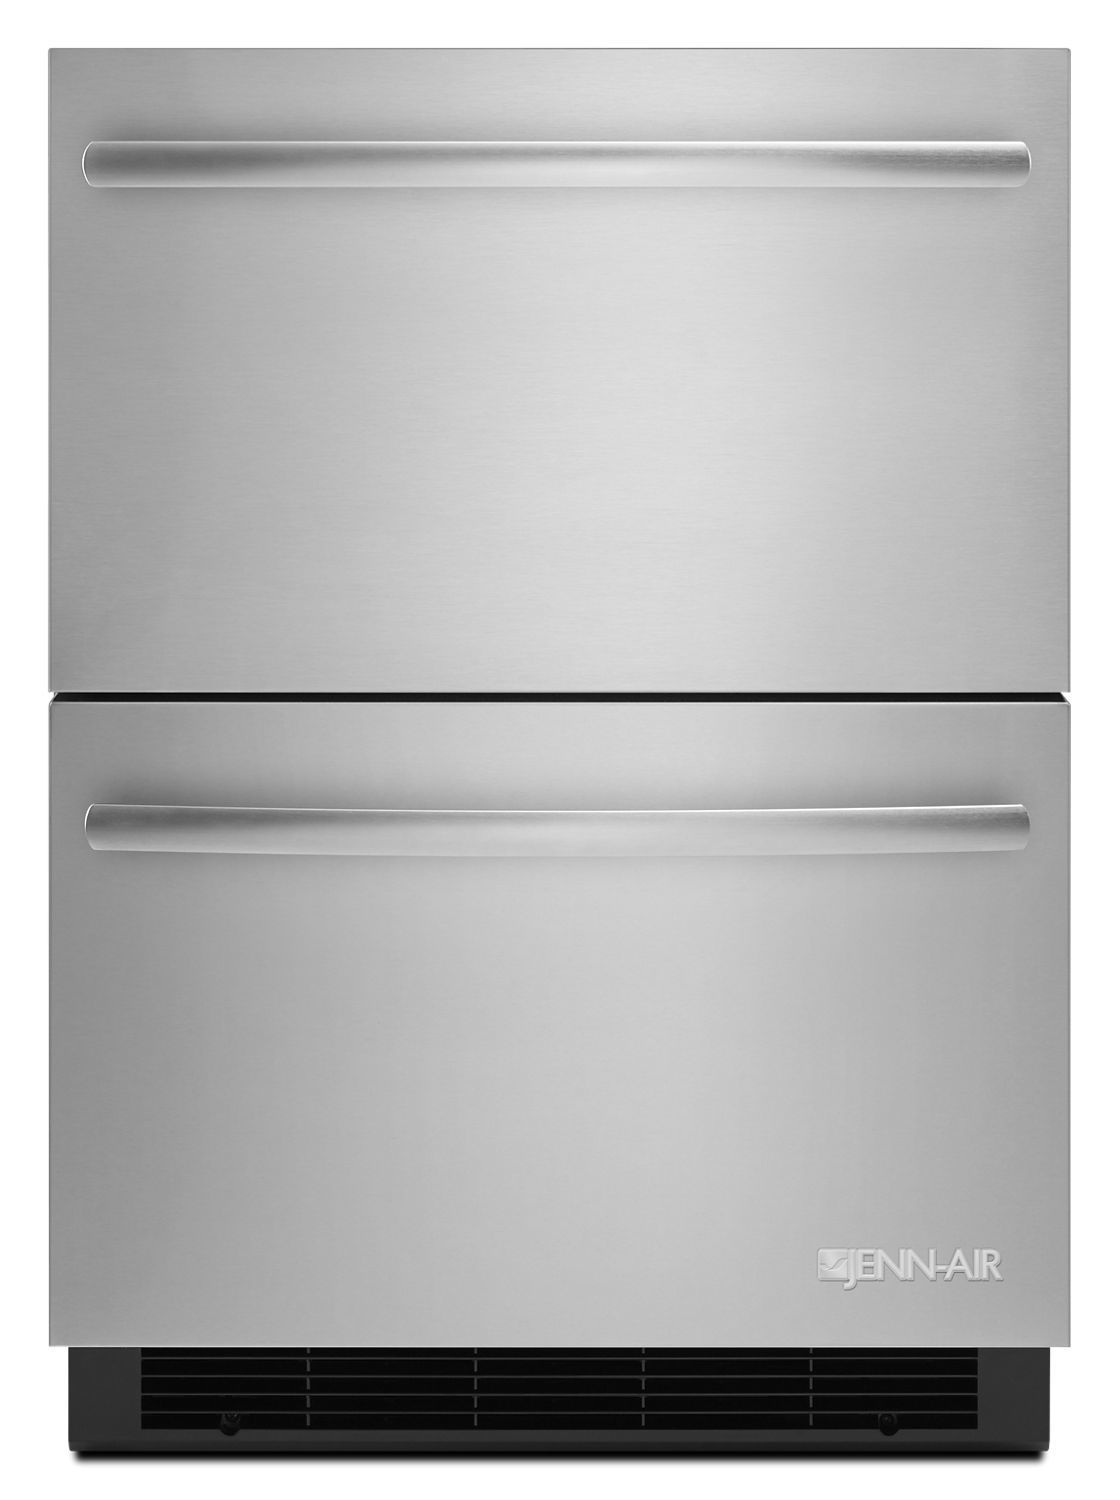 """JennairEuro-Style 24"""" Double-Refrigerator Drawers Stainless Steel"""